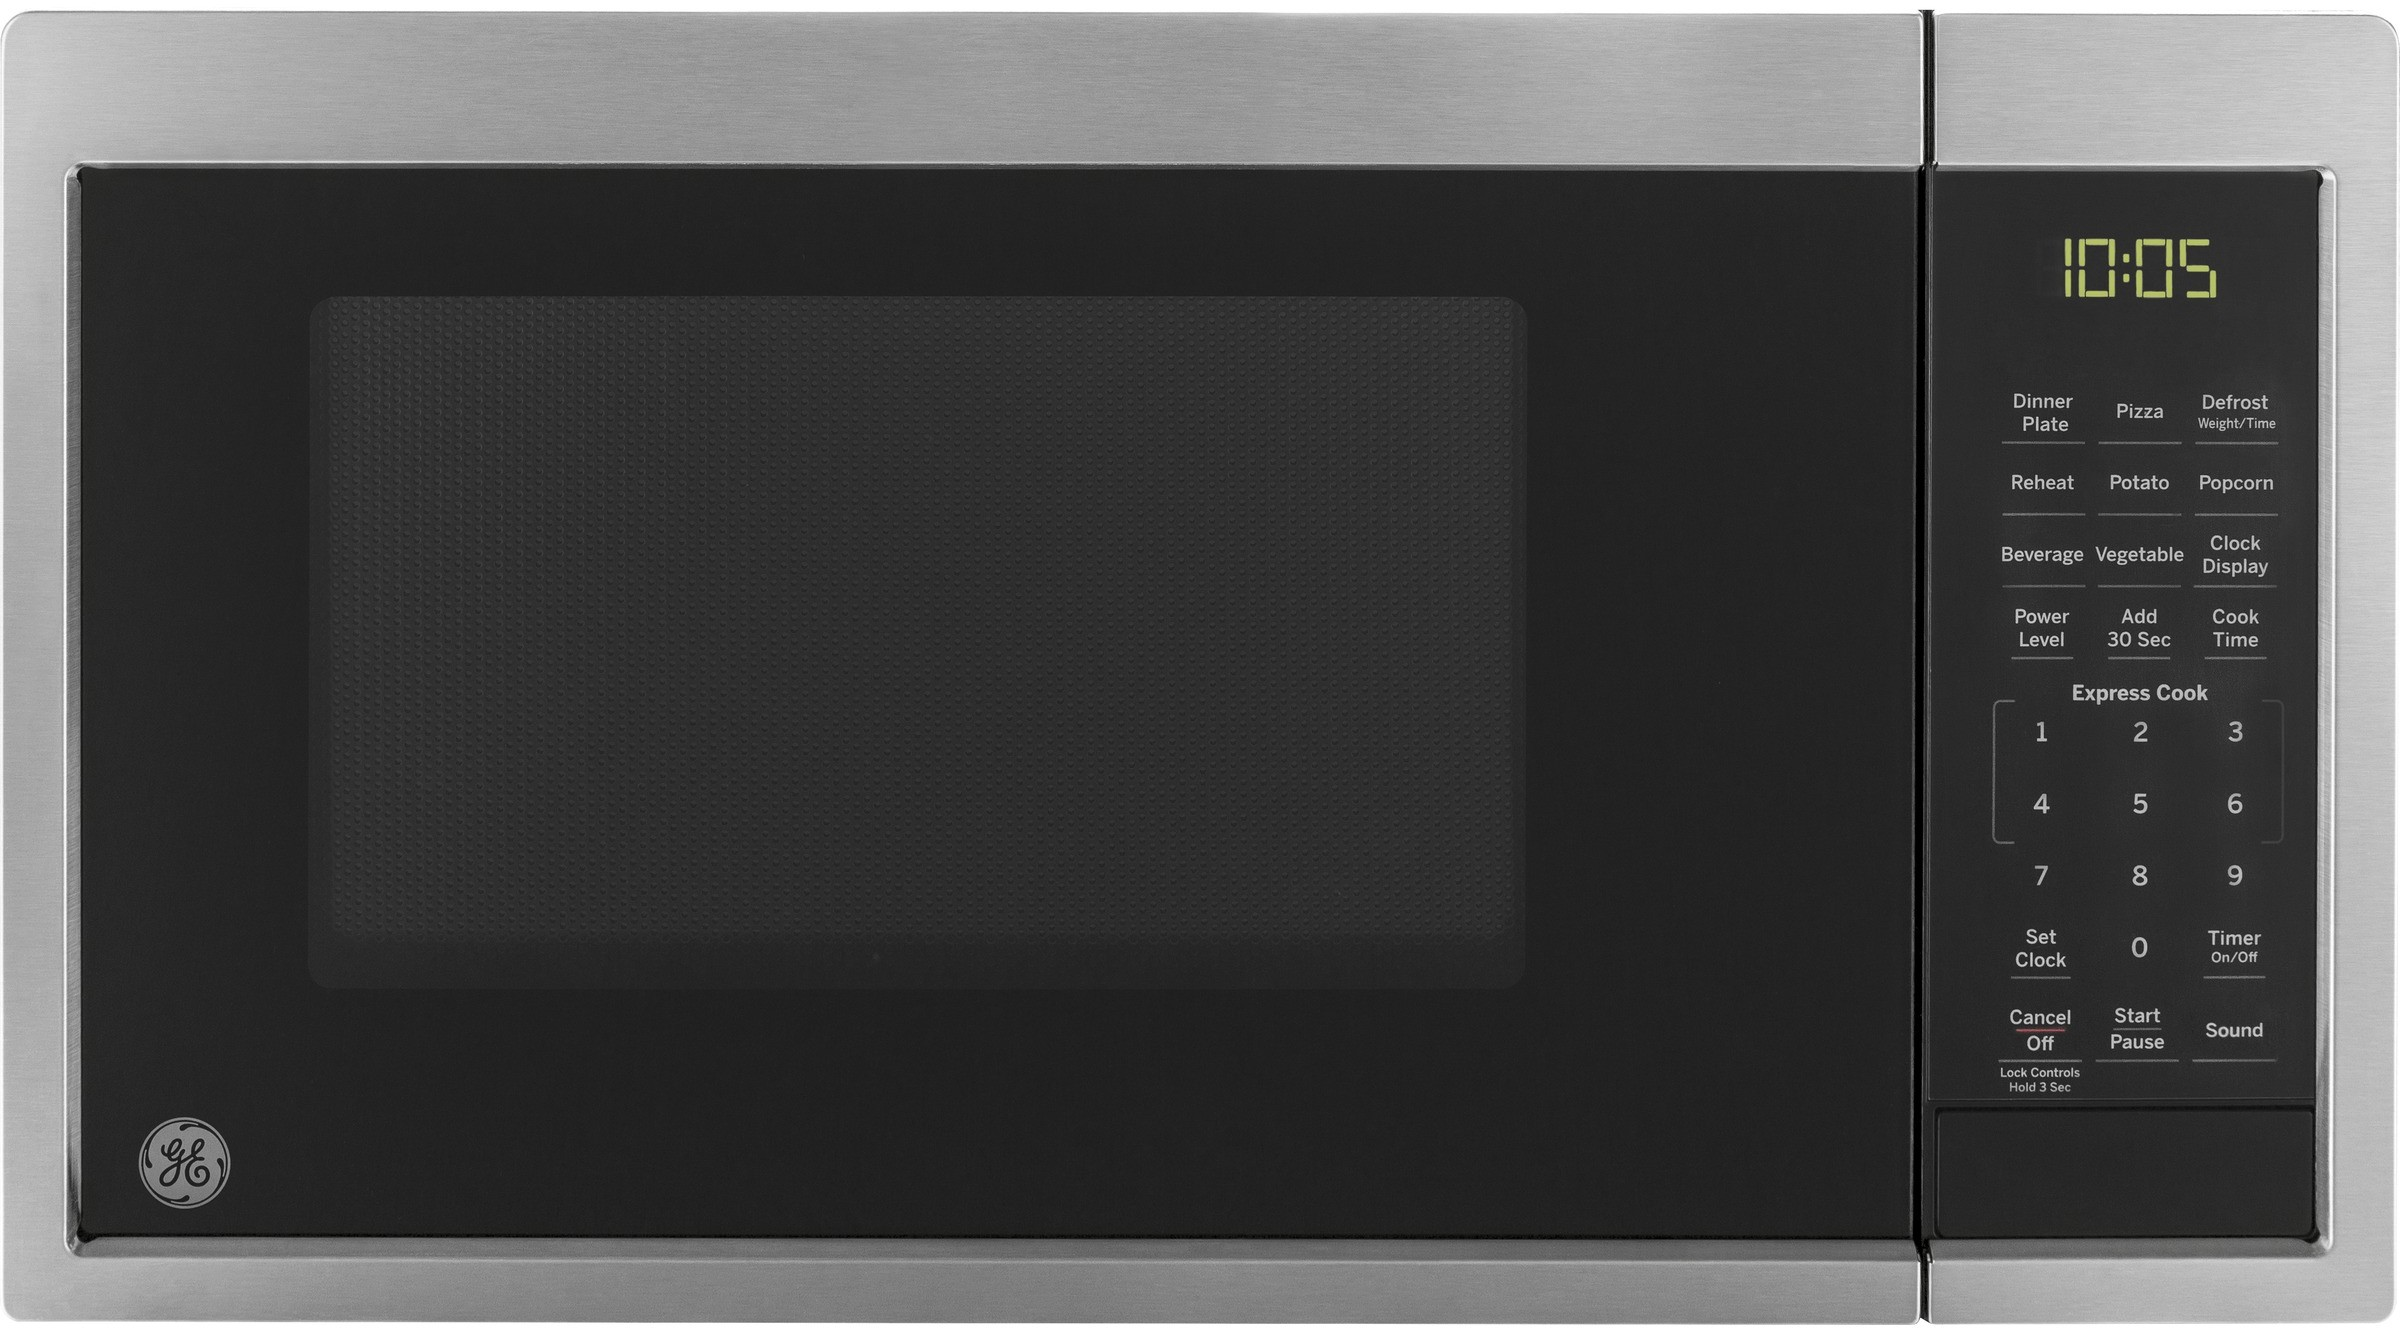 0 9 Cu Ft Countertop Microwave Oven With Convenience Cooking Controls Auto And Time Defrost Control Lockout Turntable Included Kitchen Timer